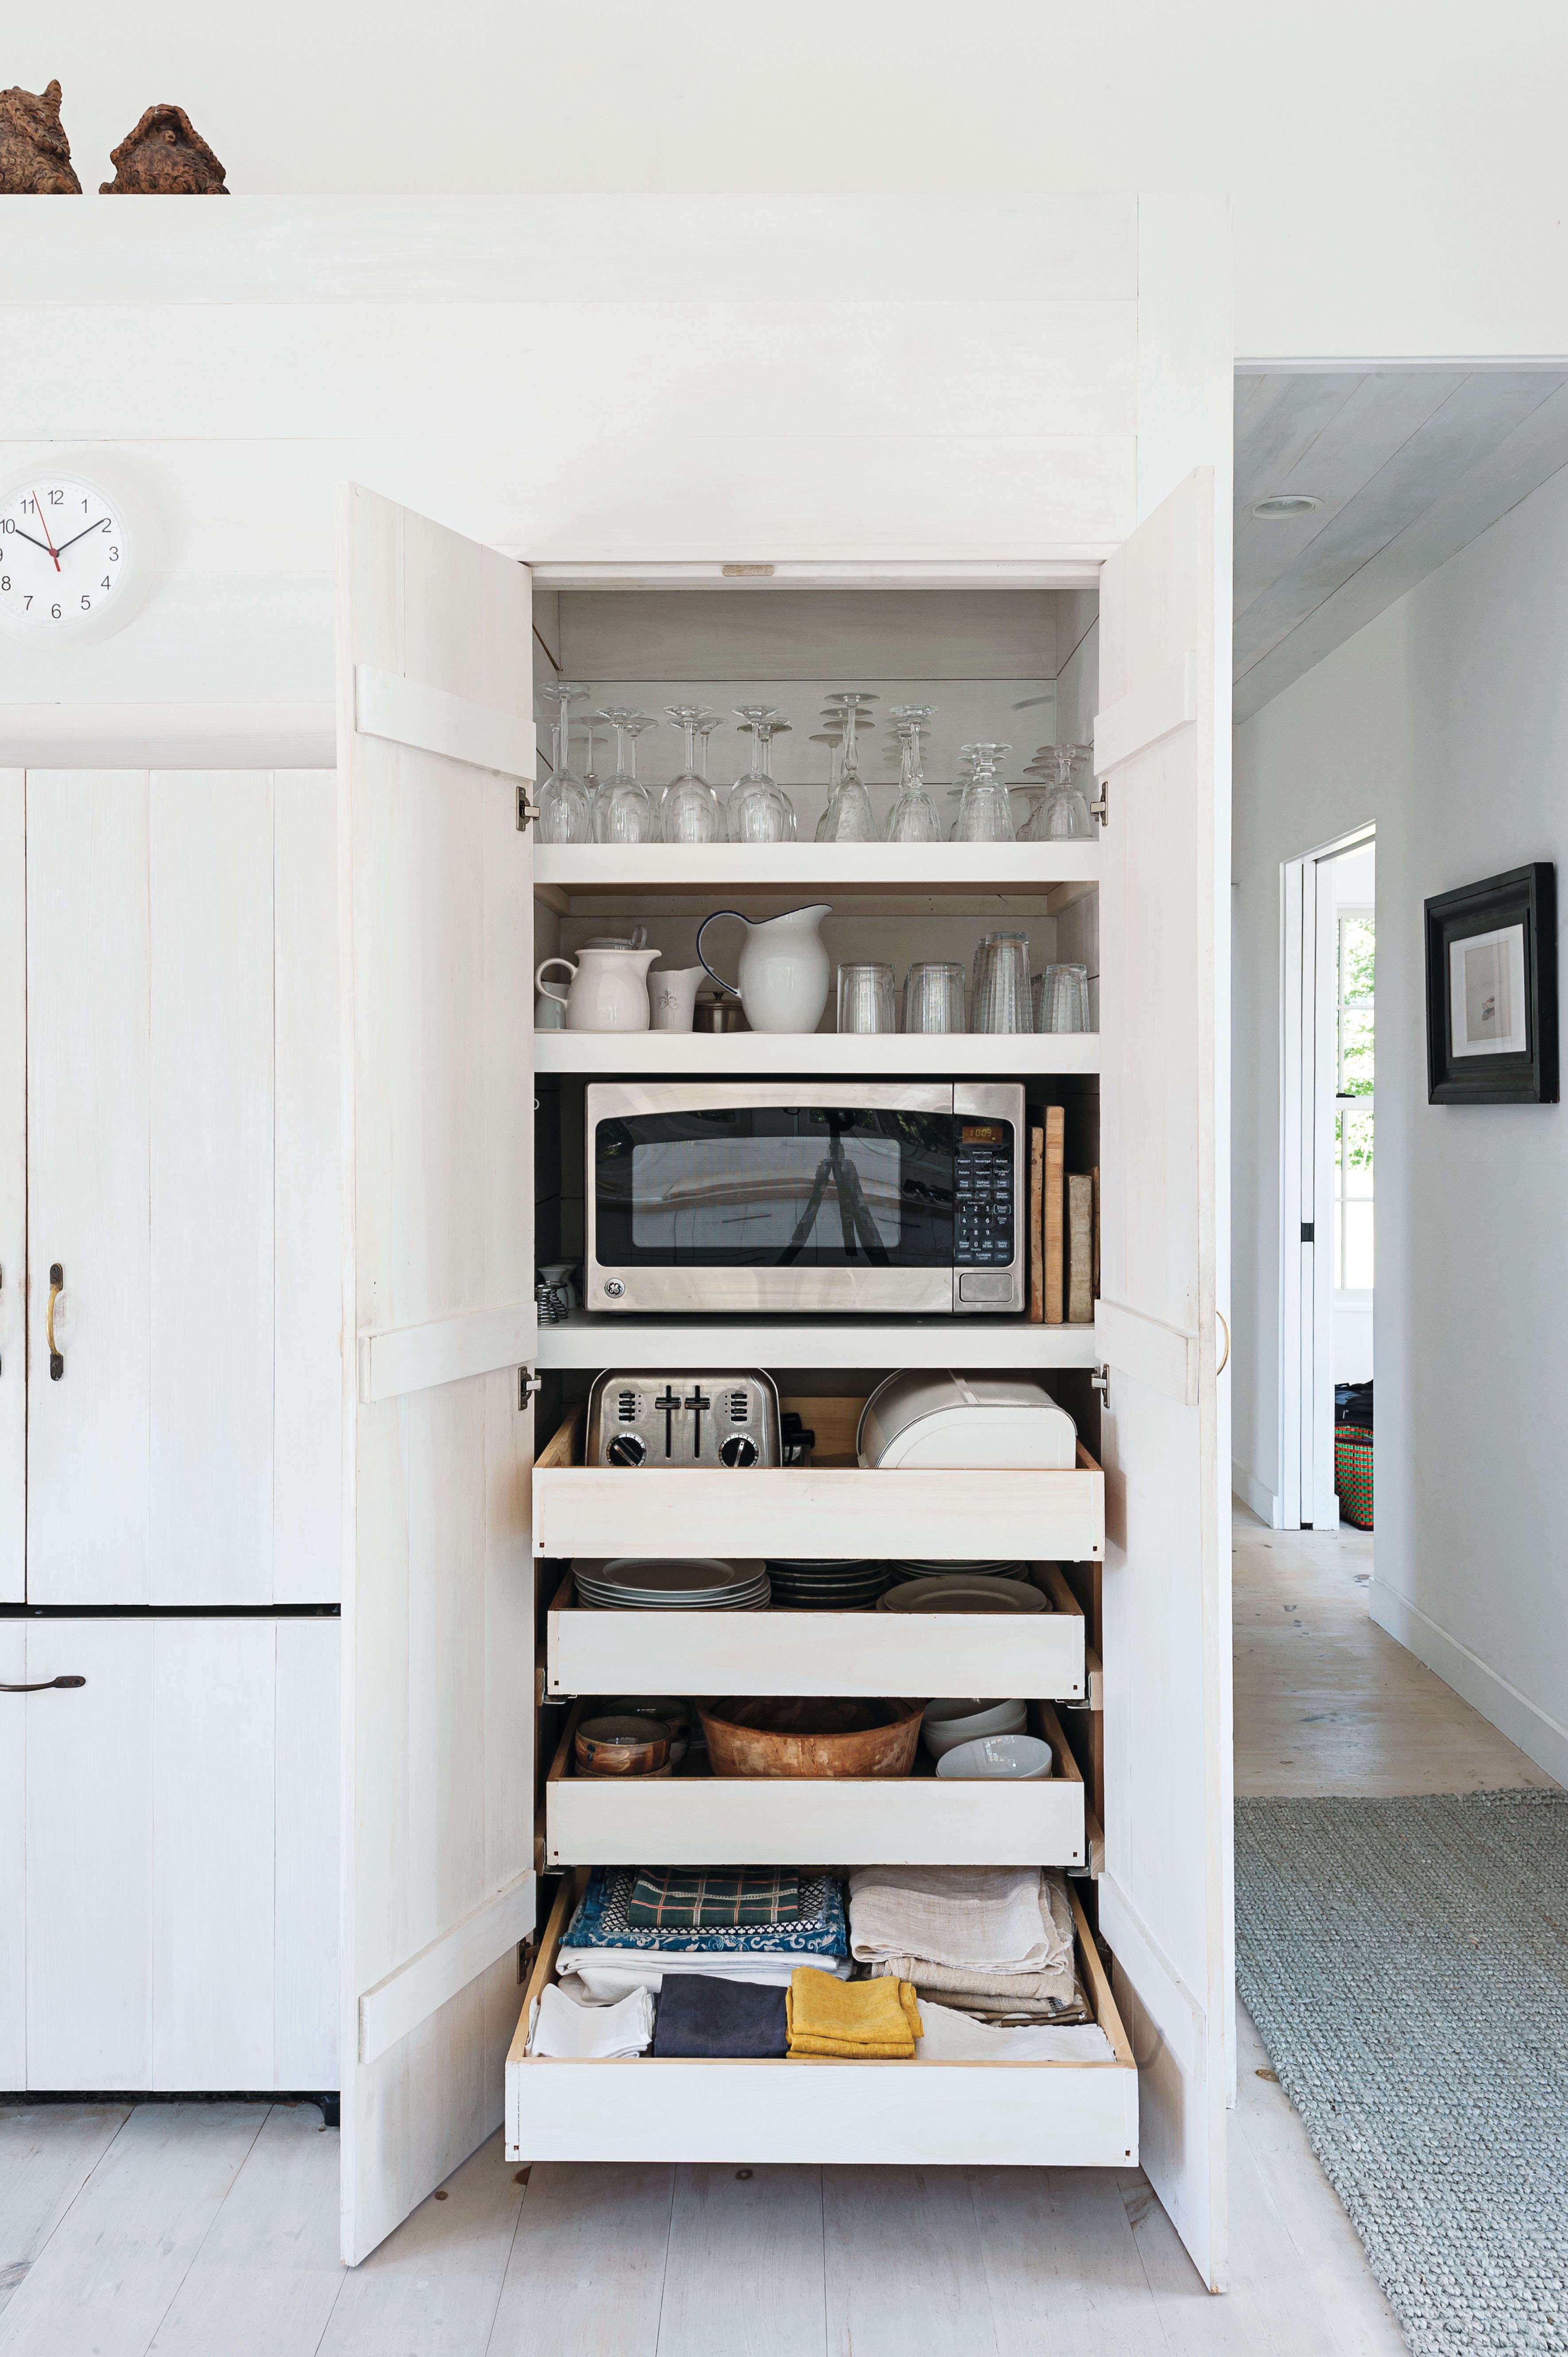 11 Strategies for Hiding the Microwave - The Organized Home